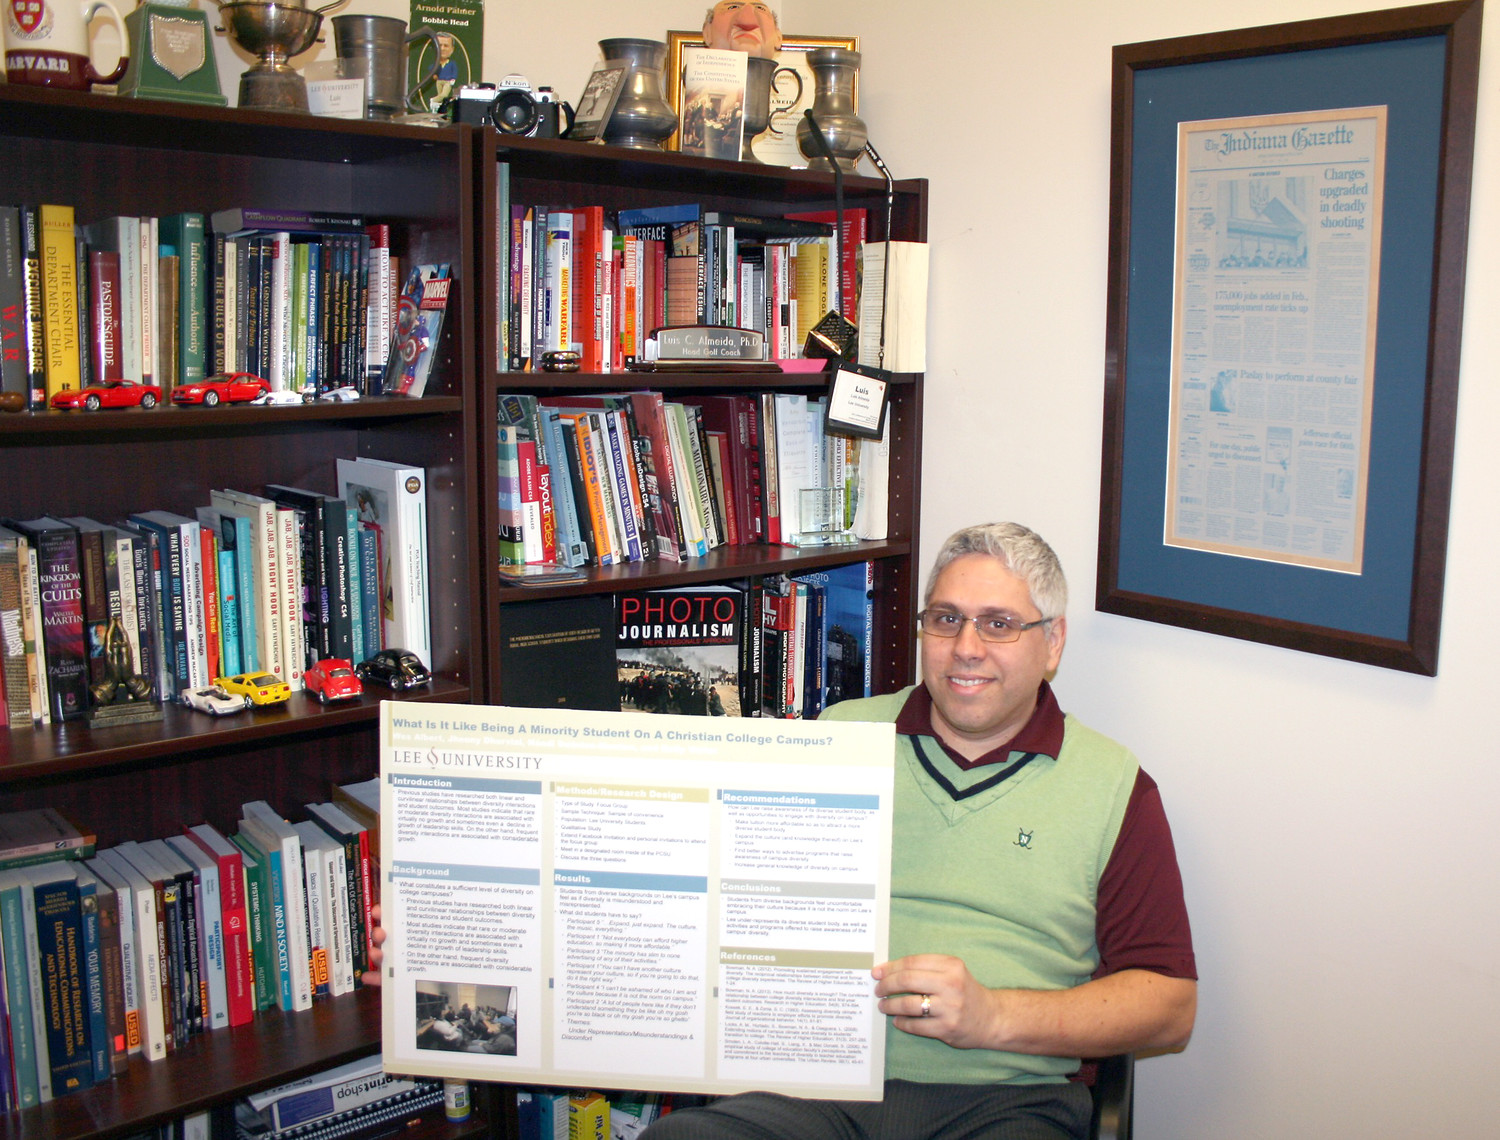 "SURROUNDED by his golf trophies and book collection, Dr. Luis Almeida displays a promotional poster that his students created titled, ""What's it like being a minority student on a Christian college campus?"" Almeida says work like this is much more immersive than simple exams."